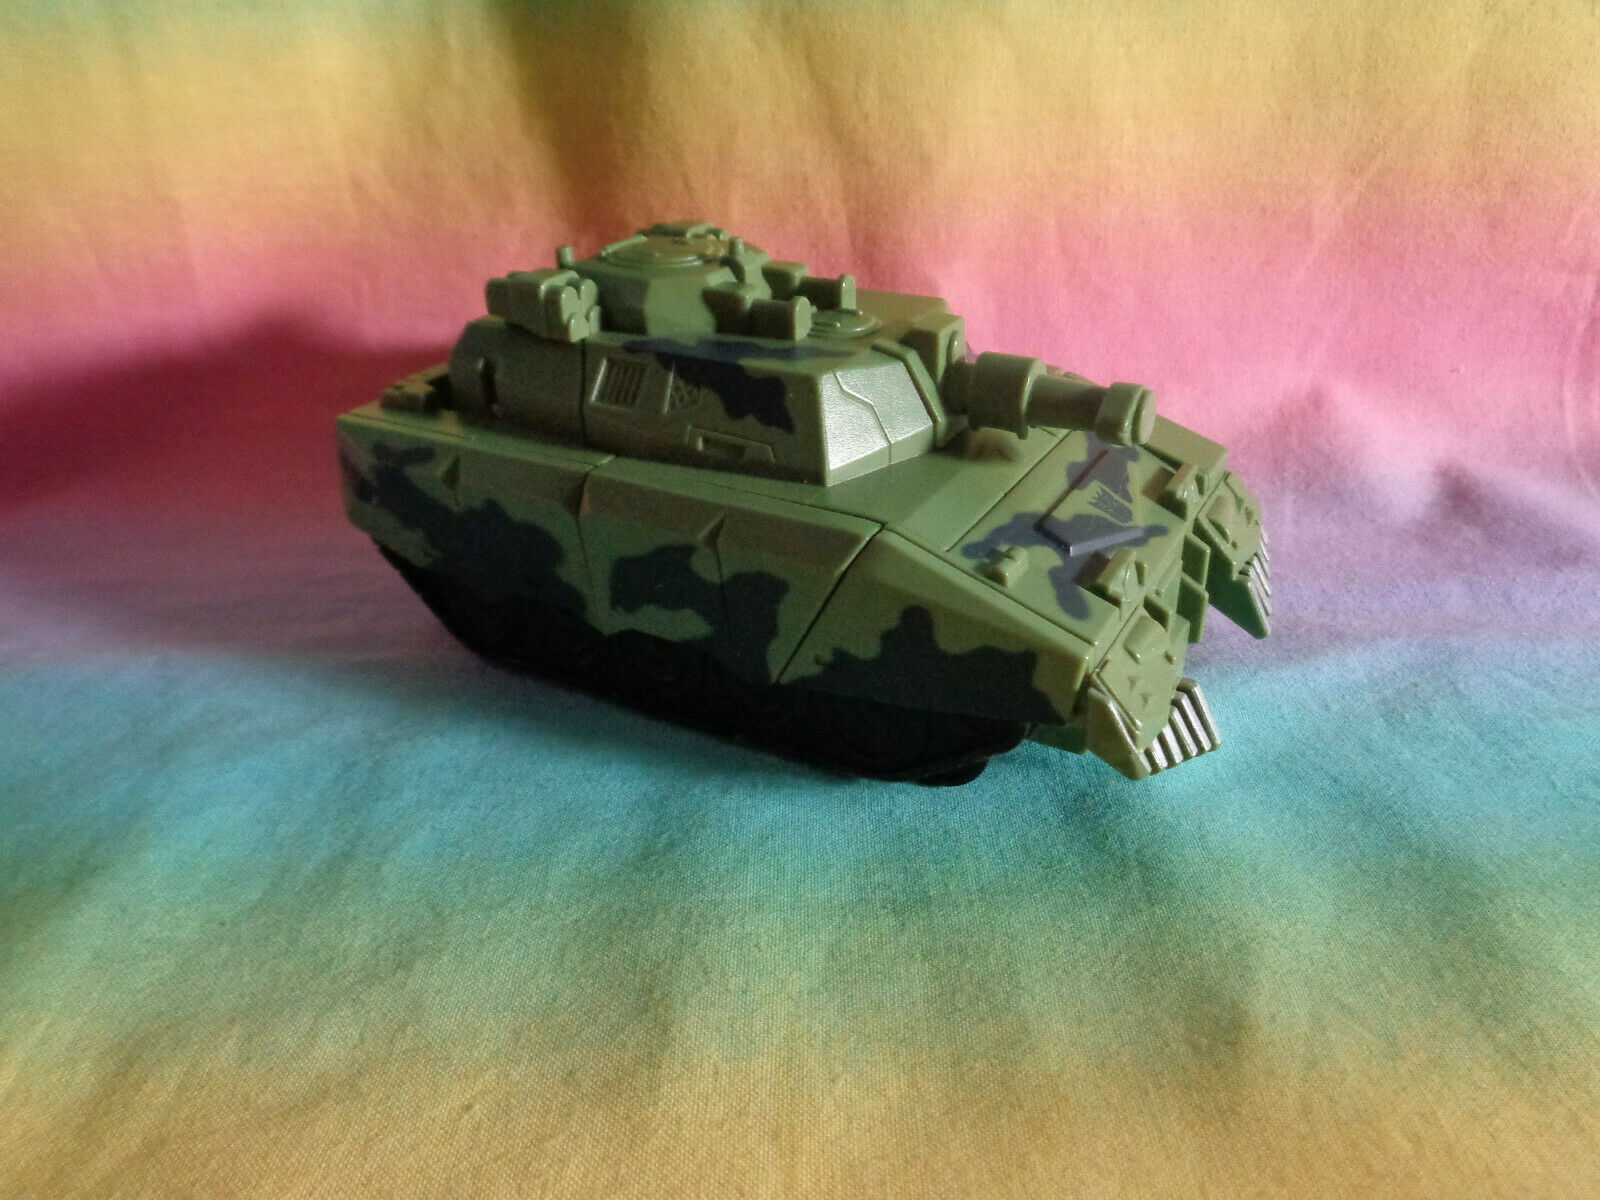 Transformers 2008 Hasbro Green Army Tank Replacement Parts - as is